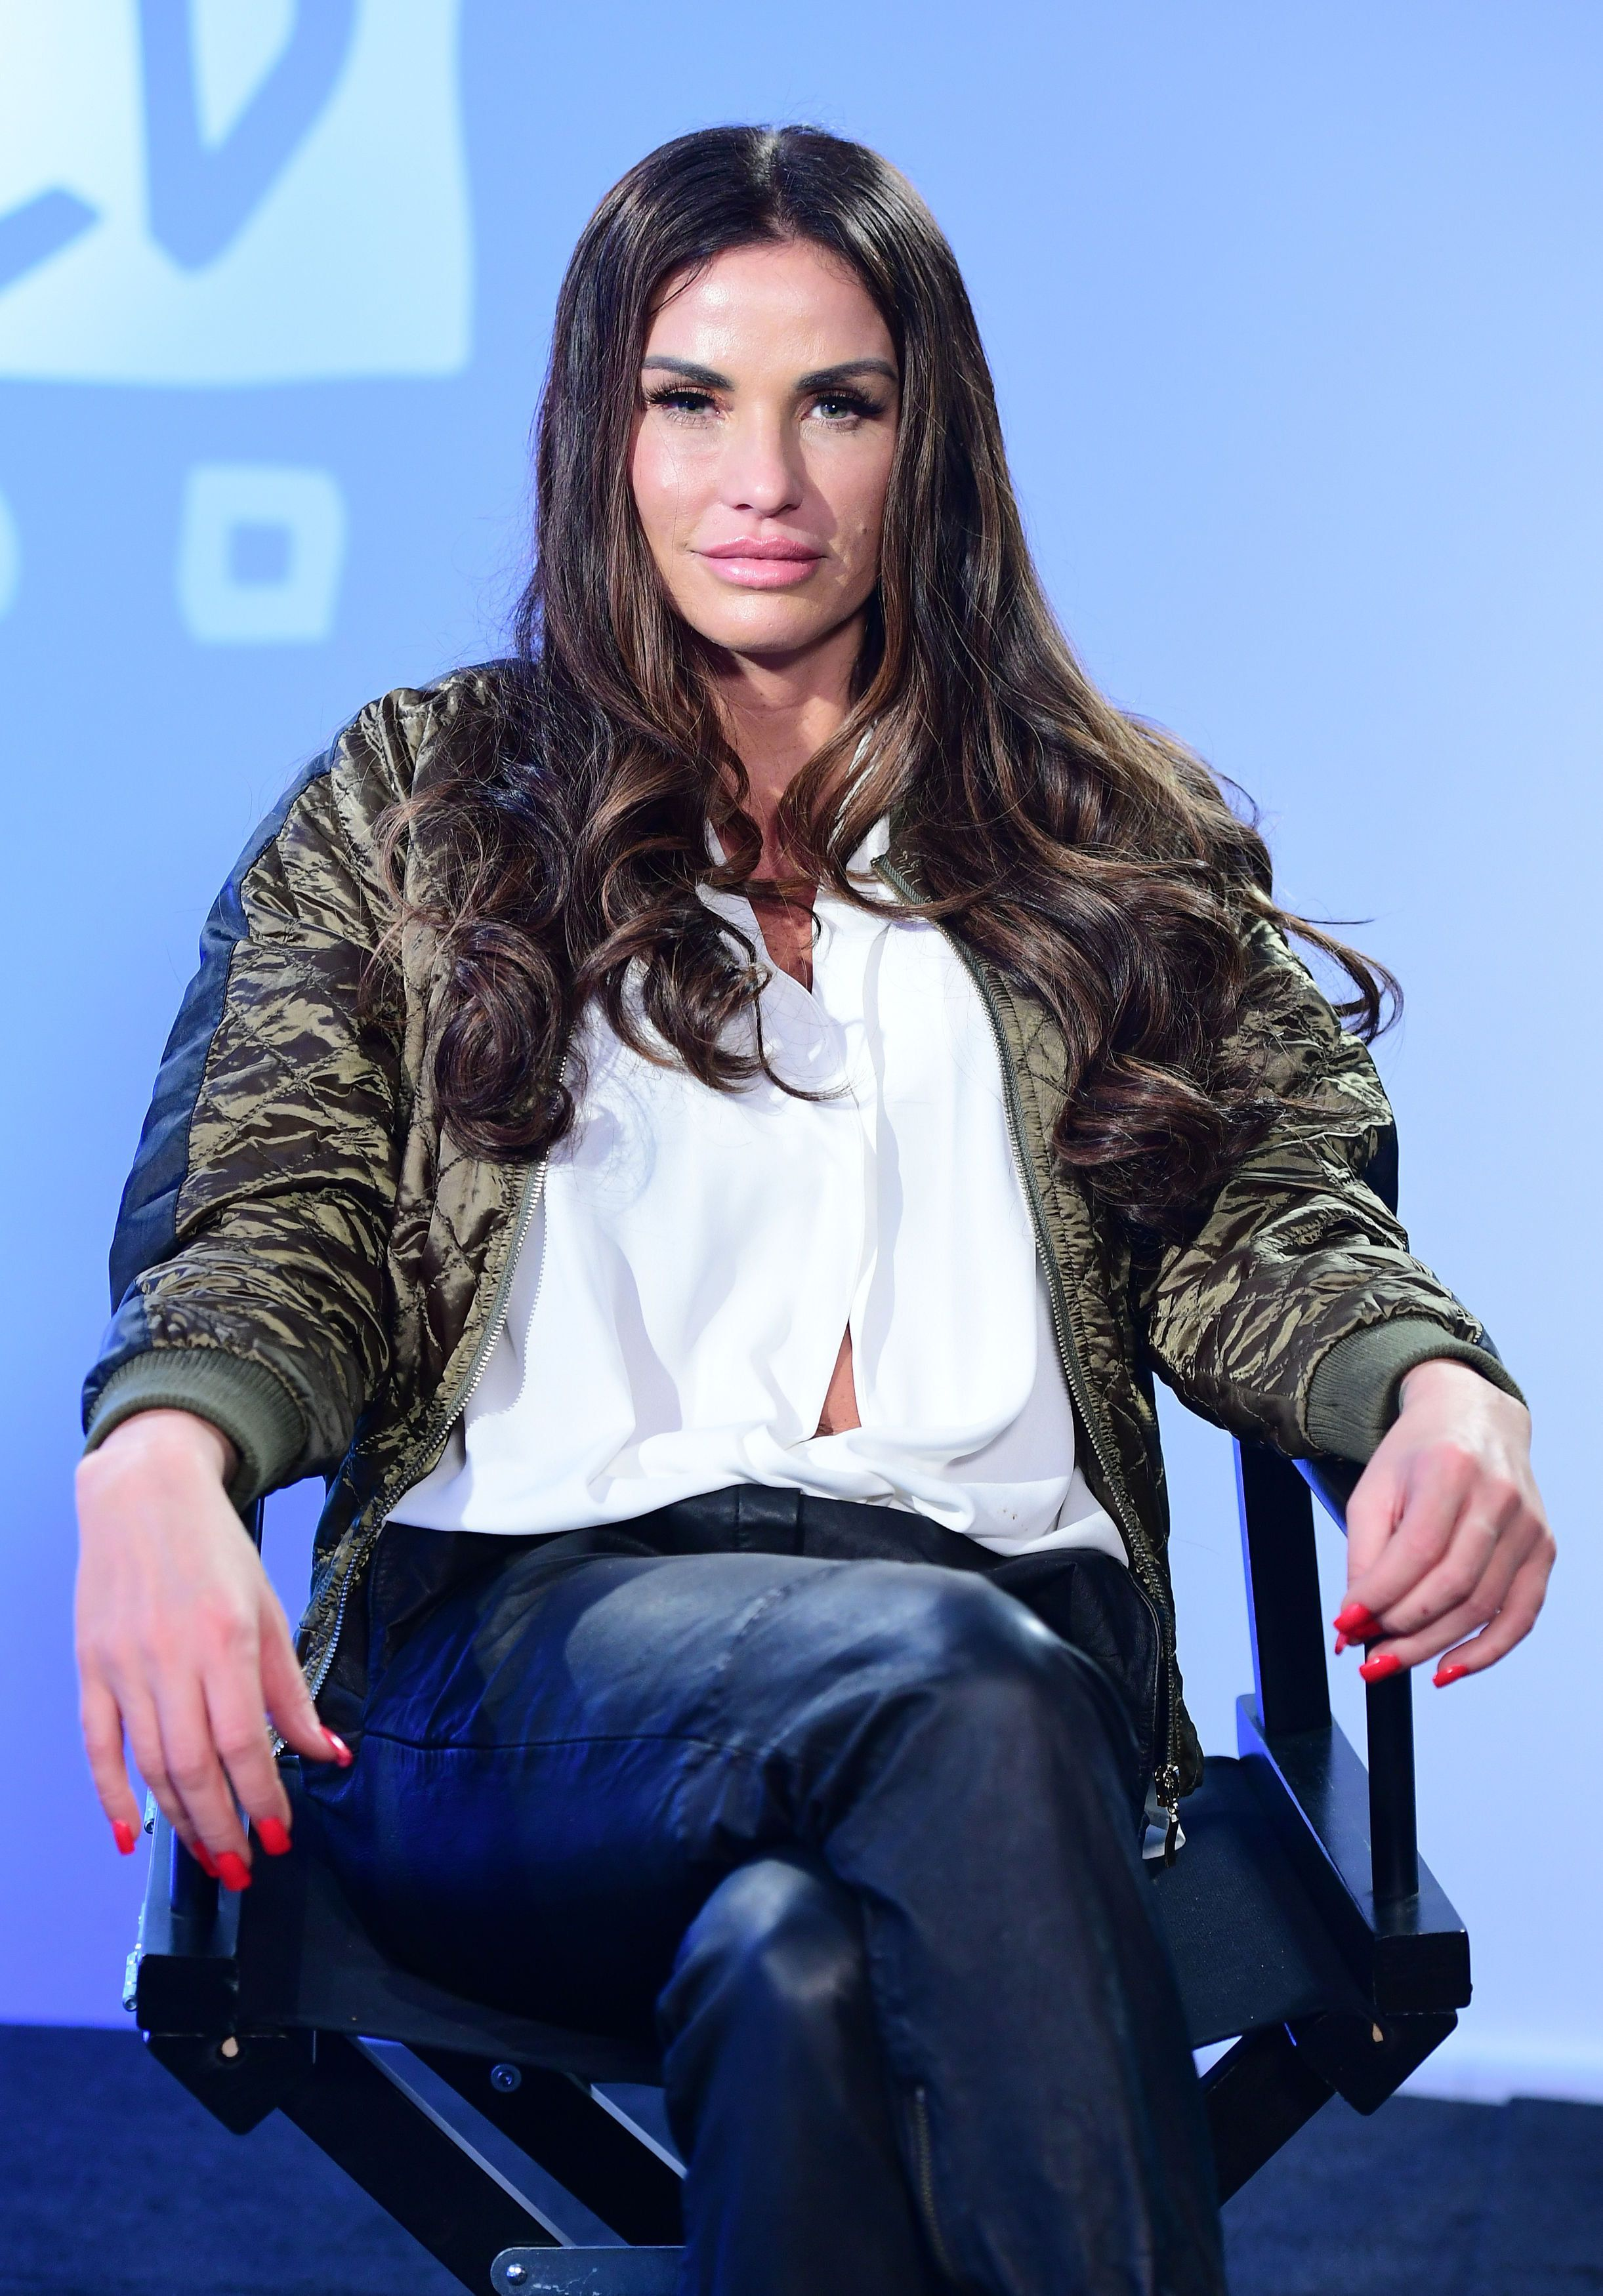 Katie Price Postpones Tour After 'Threats' To Her